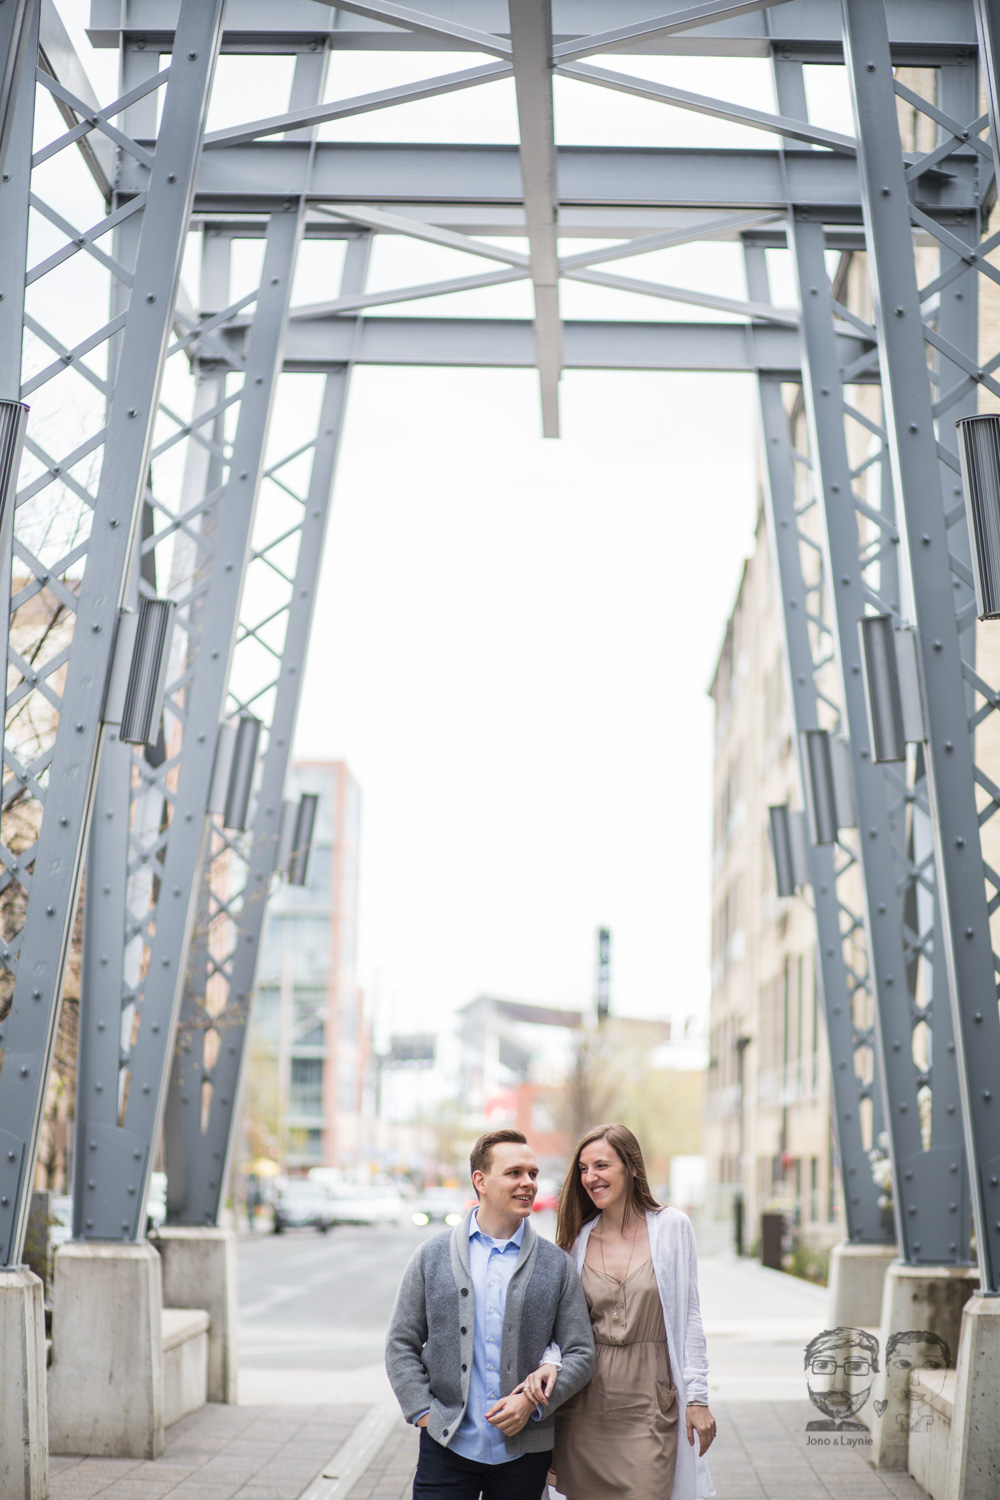 13Liberty Village Toronto- Lifestyle Photographers-Jono & Laynie Co.jpg